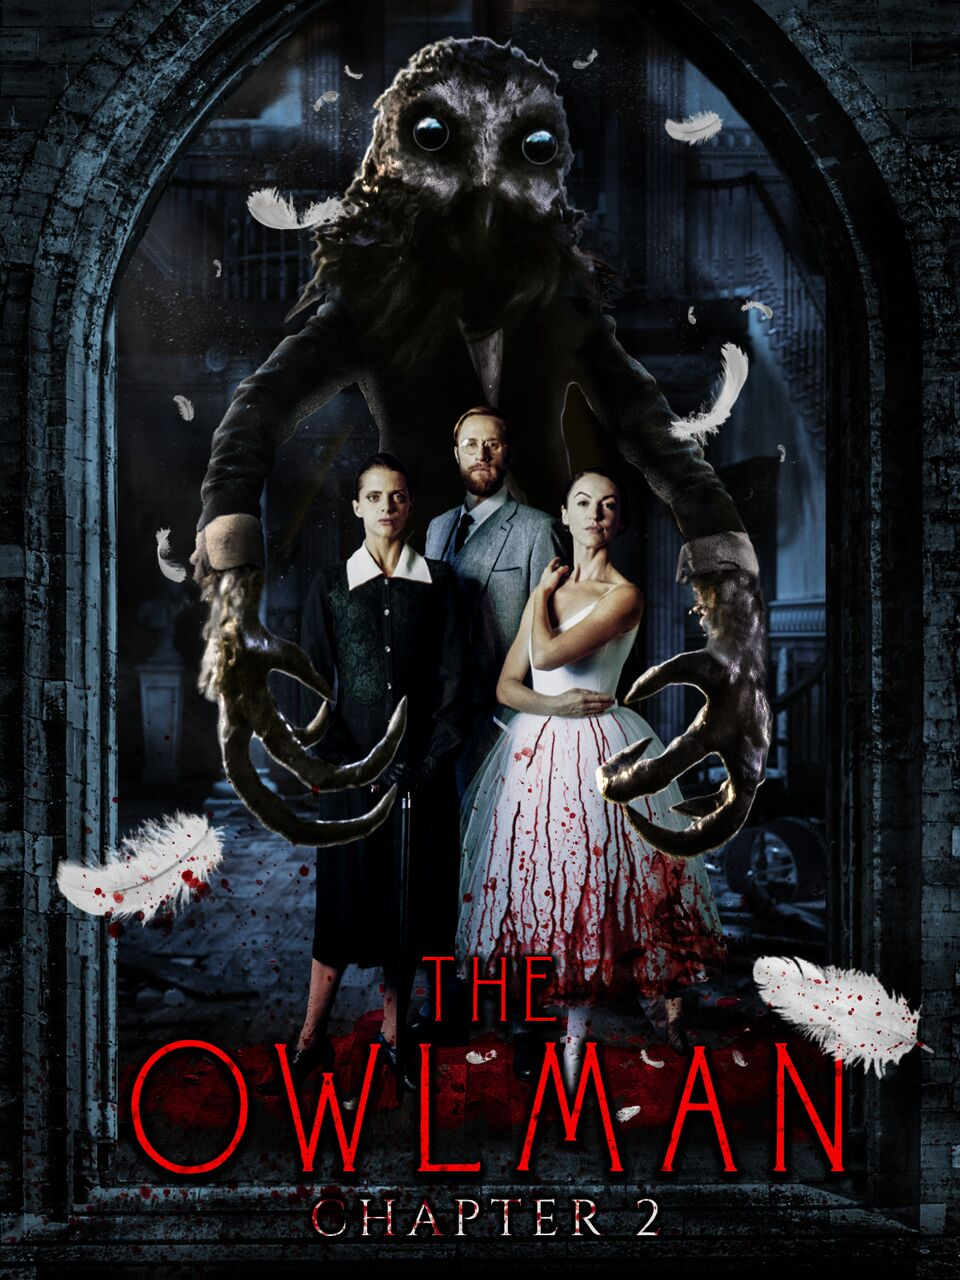 NEW 'Owlman' Prank Video!